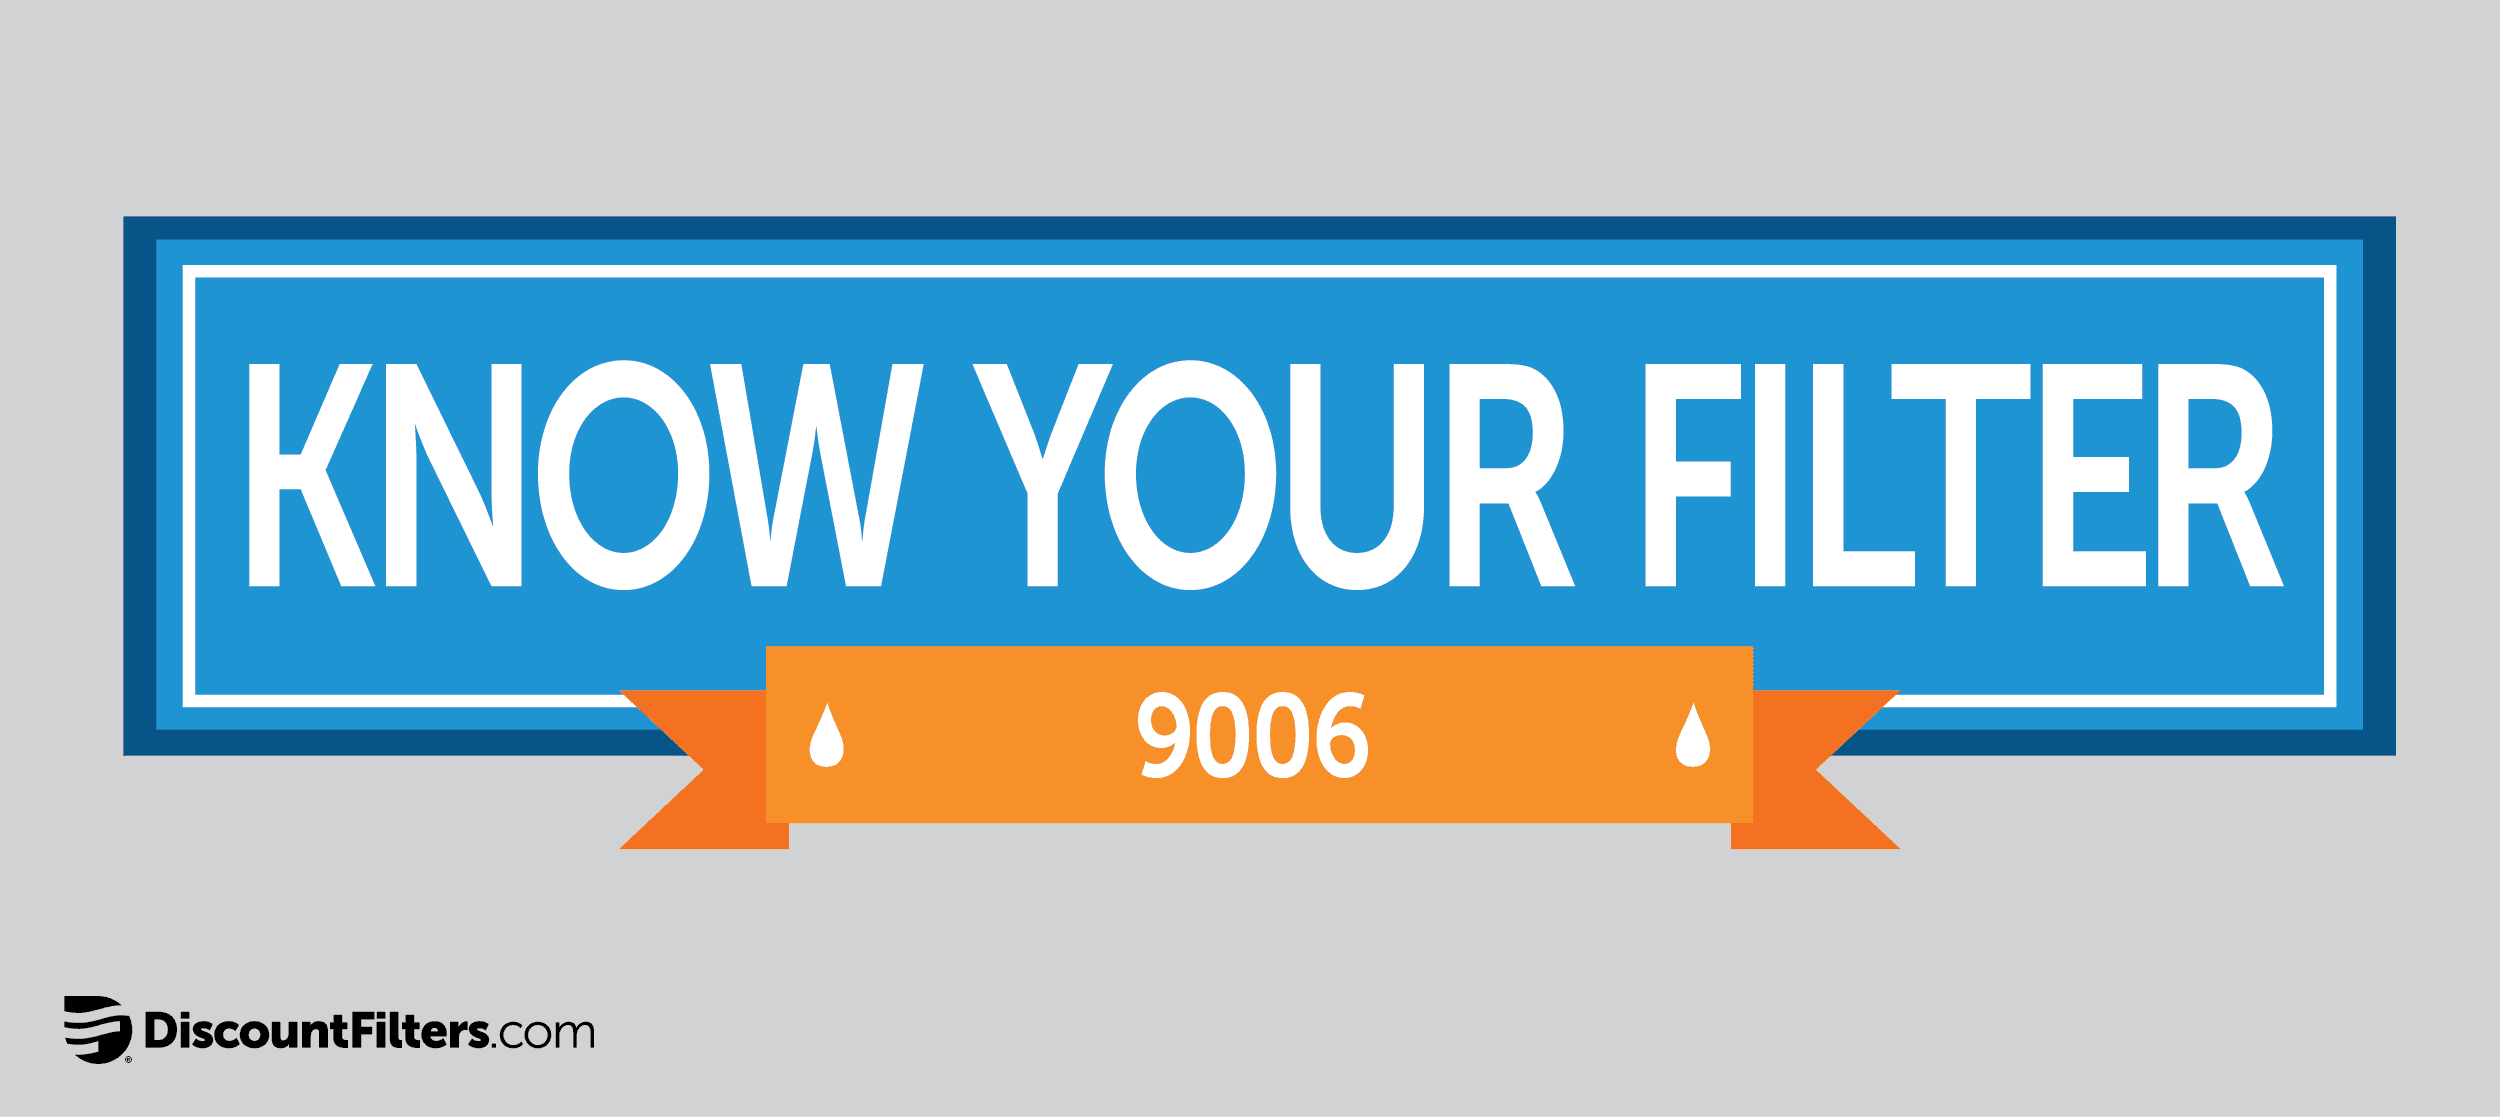 know your fridge filter: 9006